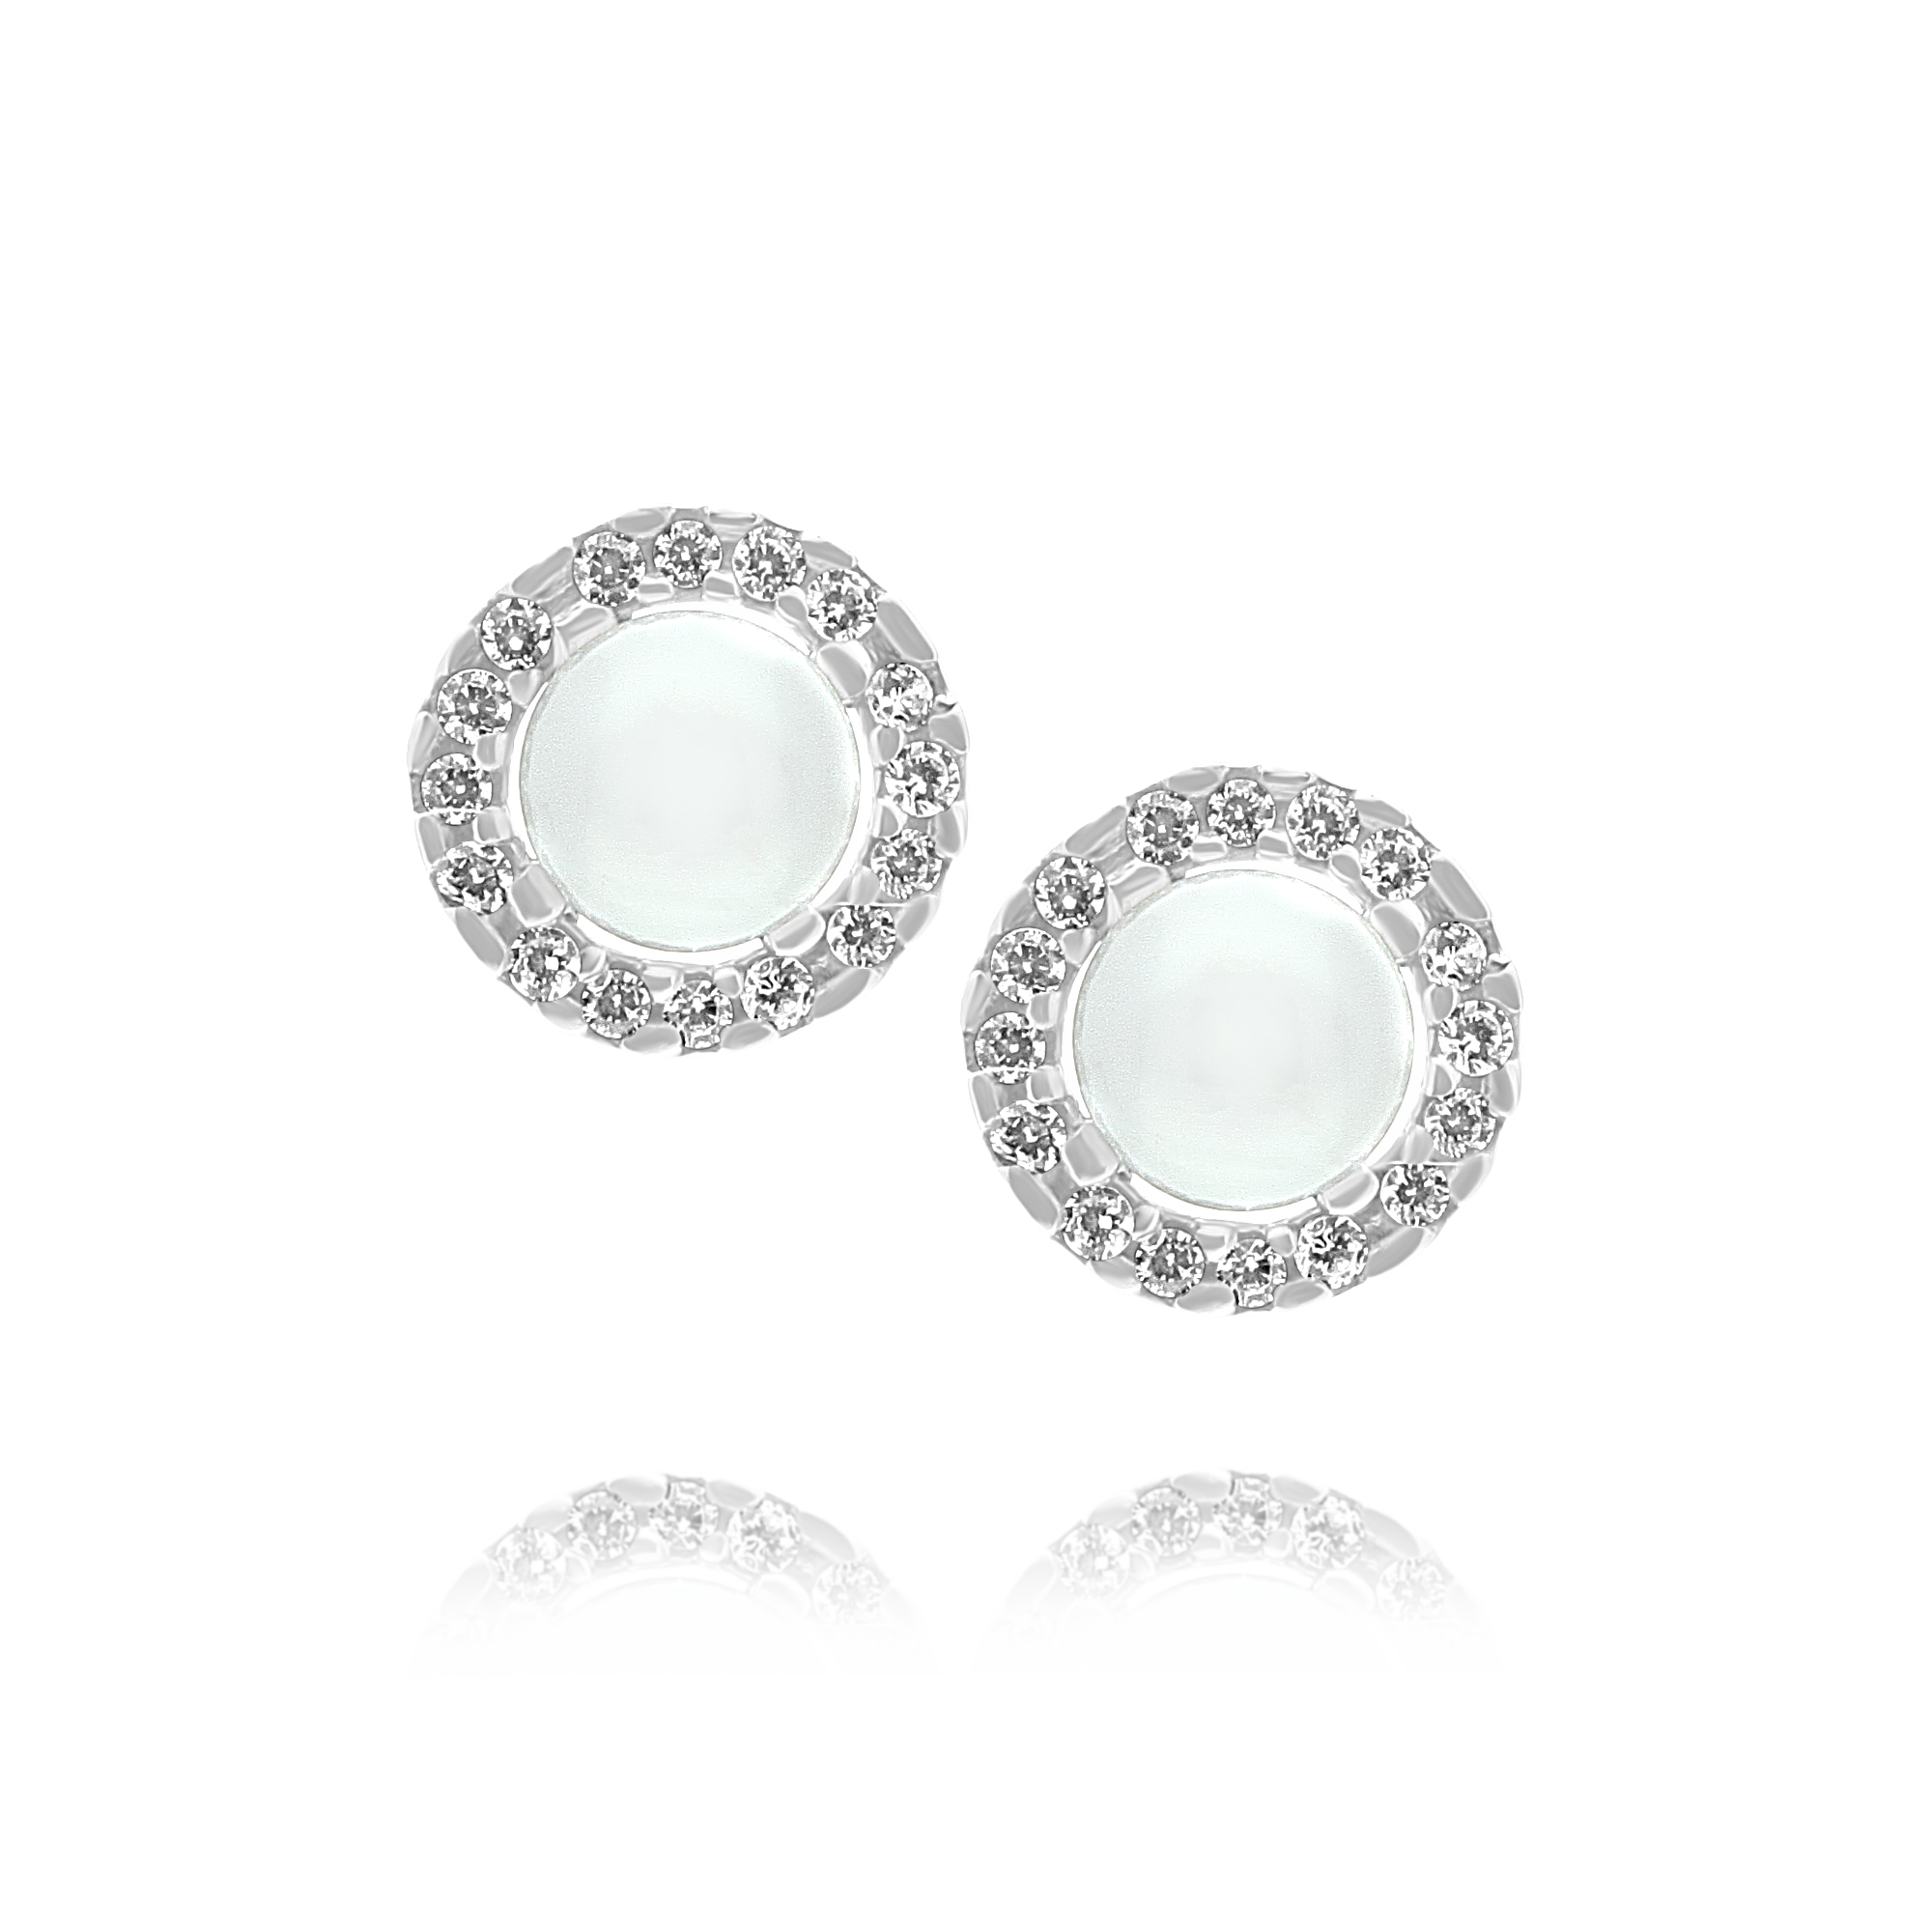 Pearl Earrings with Cubic Zirconia Surround